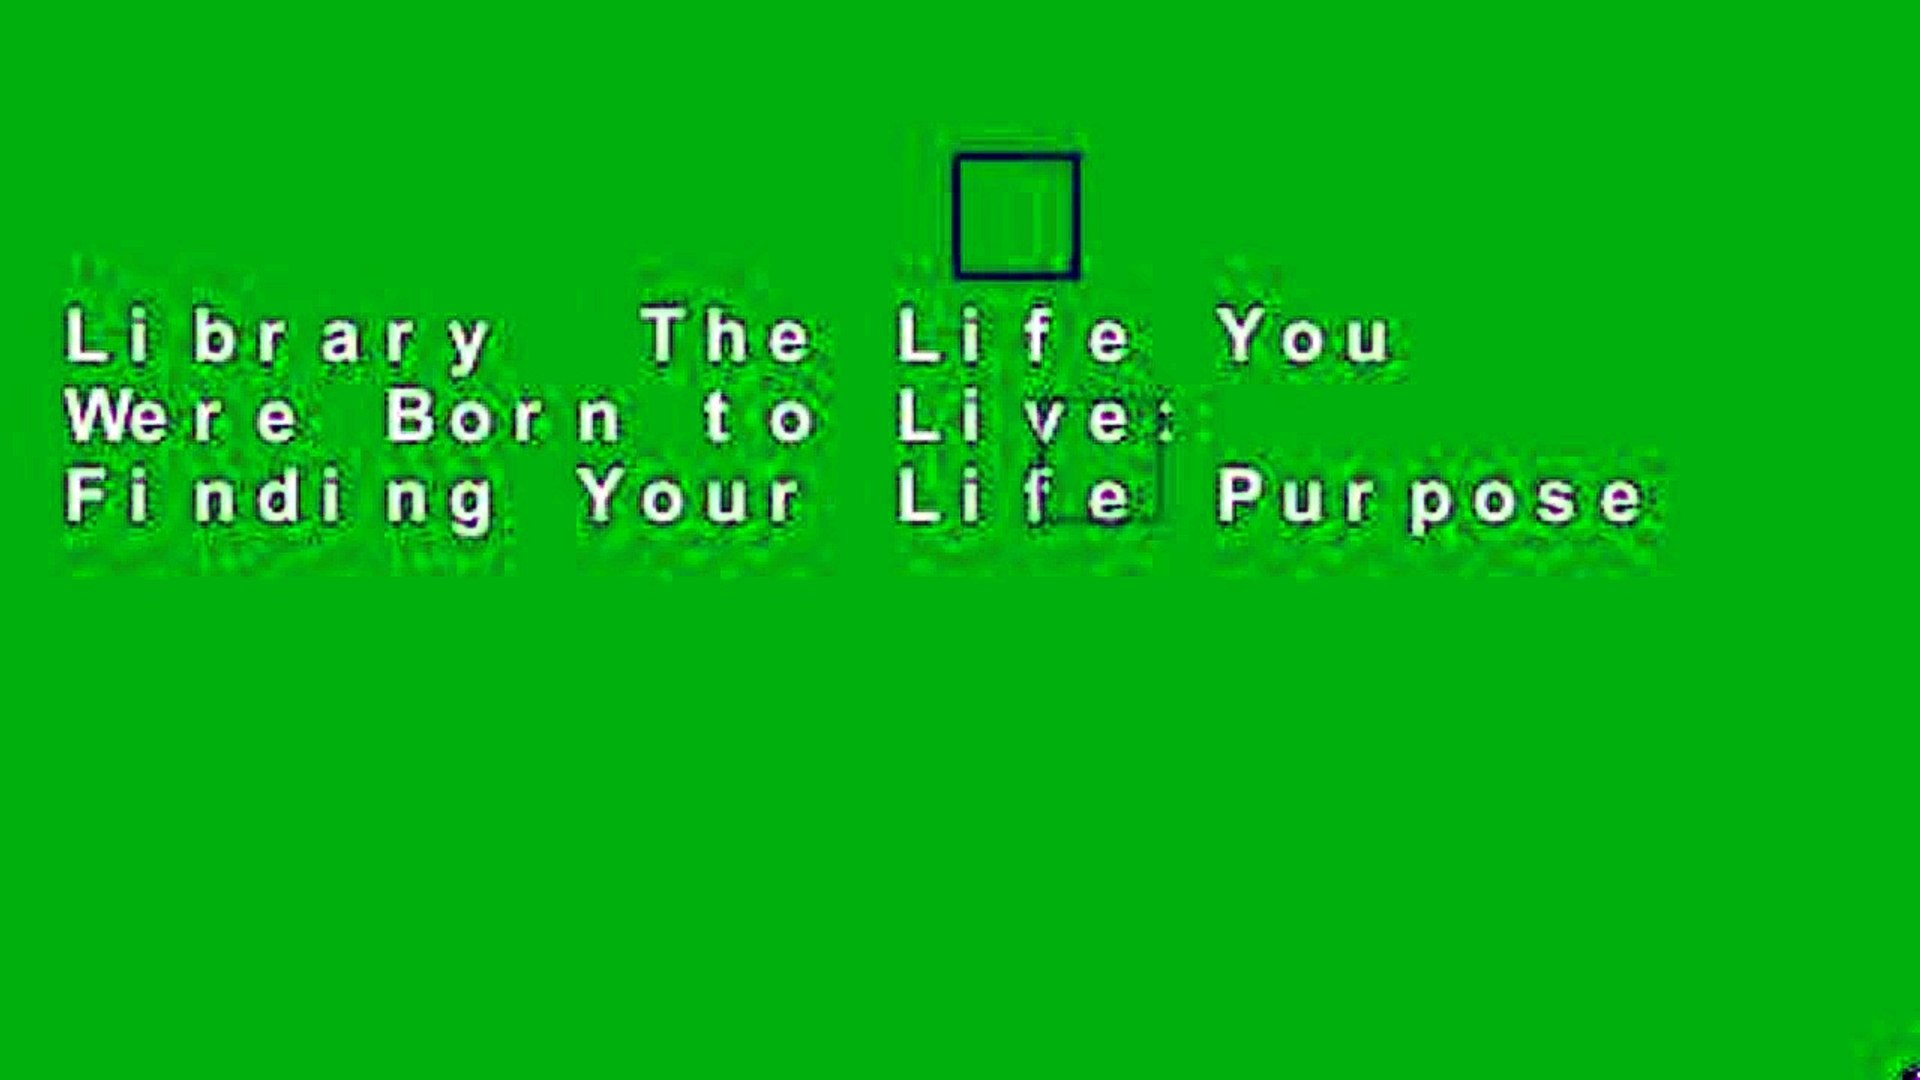 Library  The Life You Were Born to Live: Finding Your Life Purpose